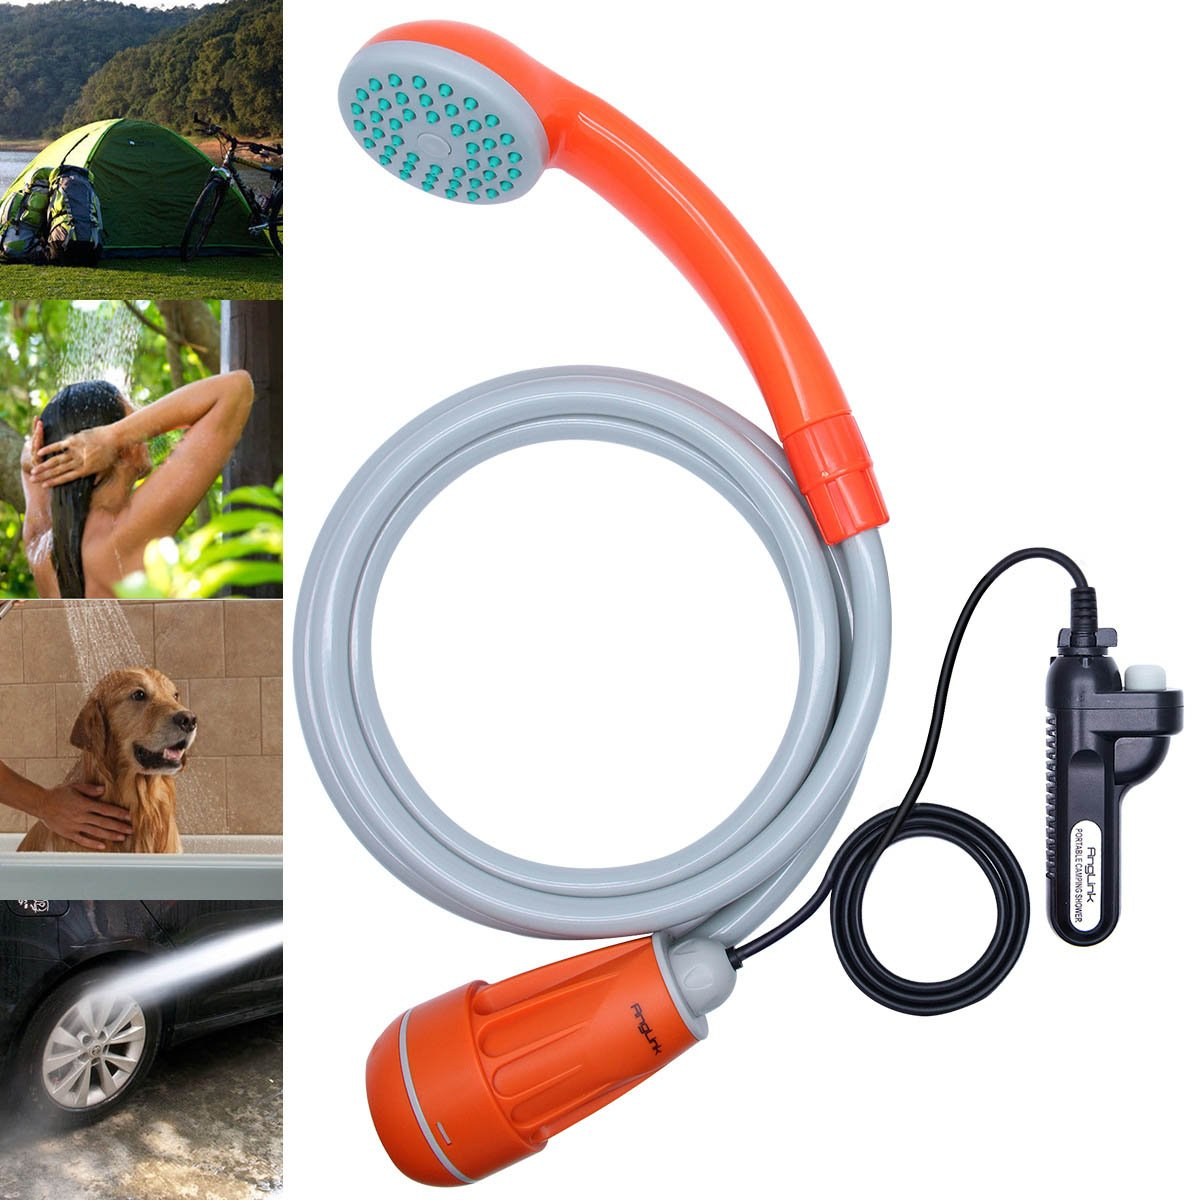 Upgraded Portable Camping Shower